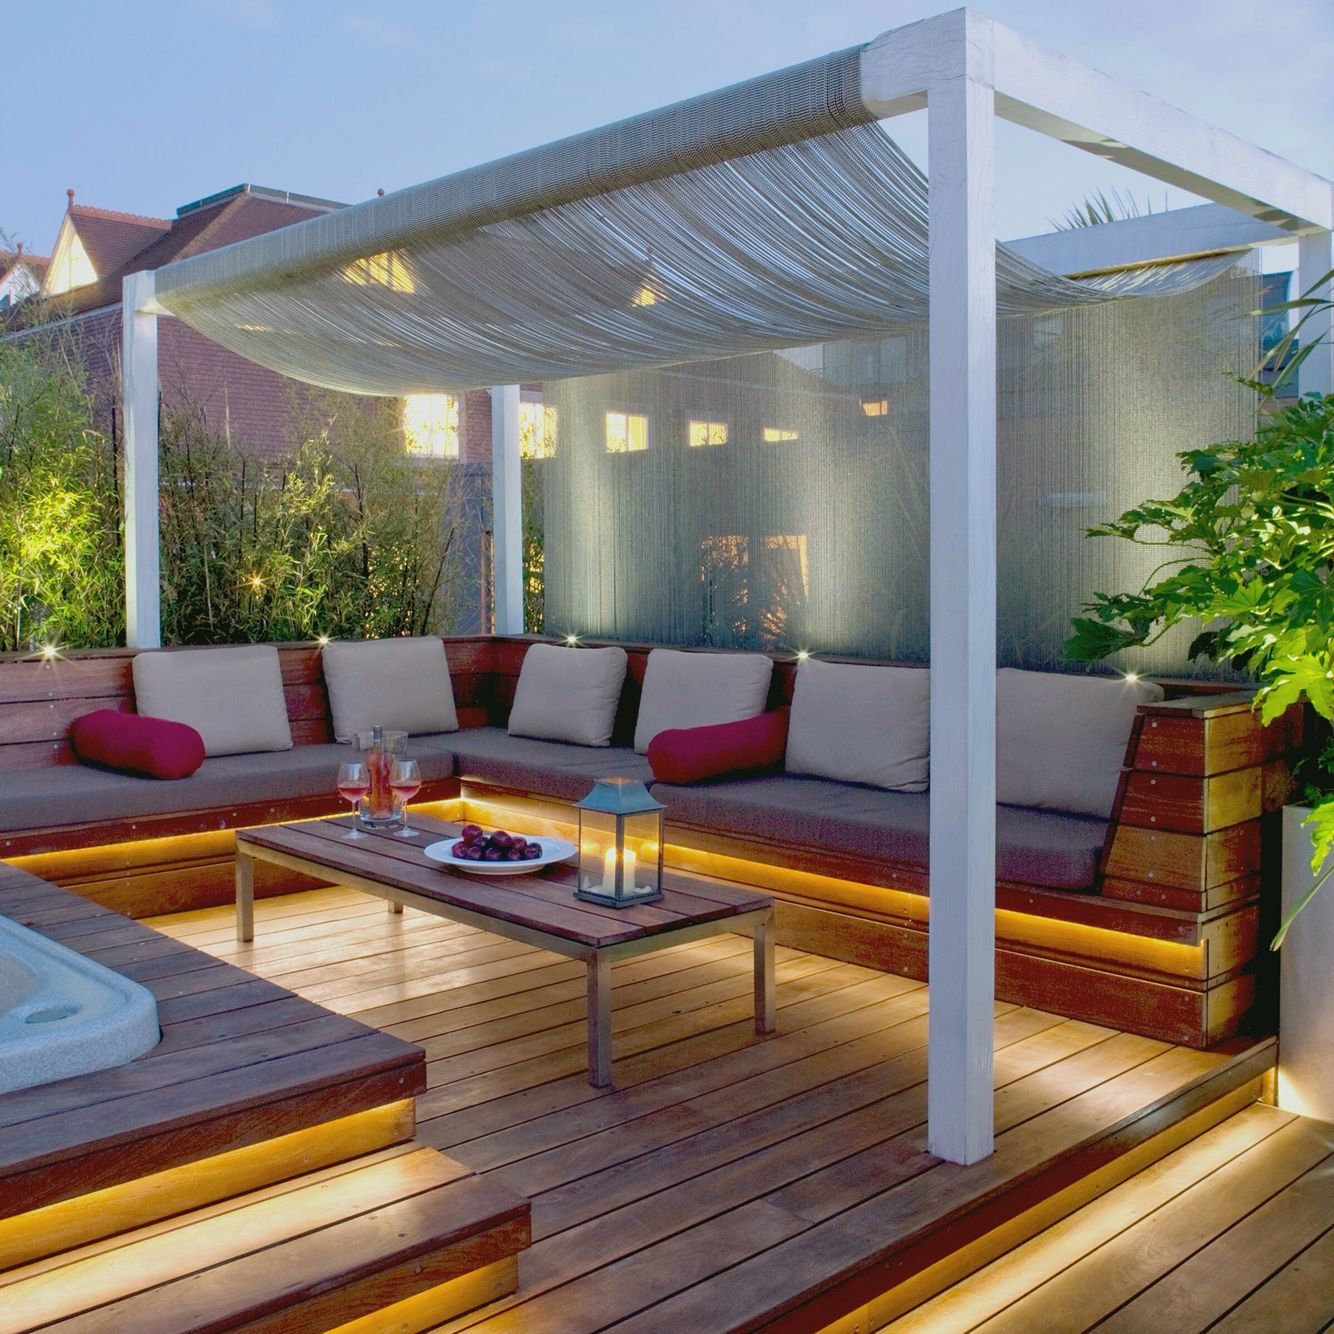 concealed lighting ideas. Roof Terrace Landscape Decking Hot Tub Jacuzzi External Concealed Lighting Planting Bamboo Exotic Frame Cushions Red Ideas